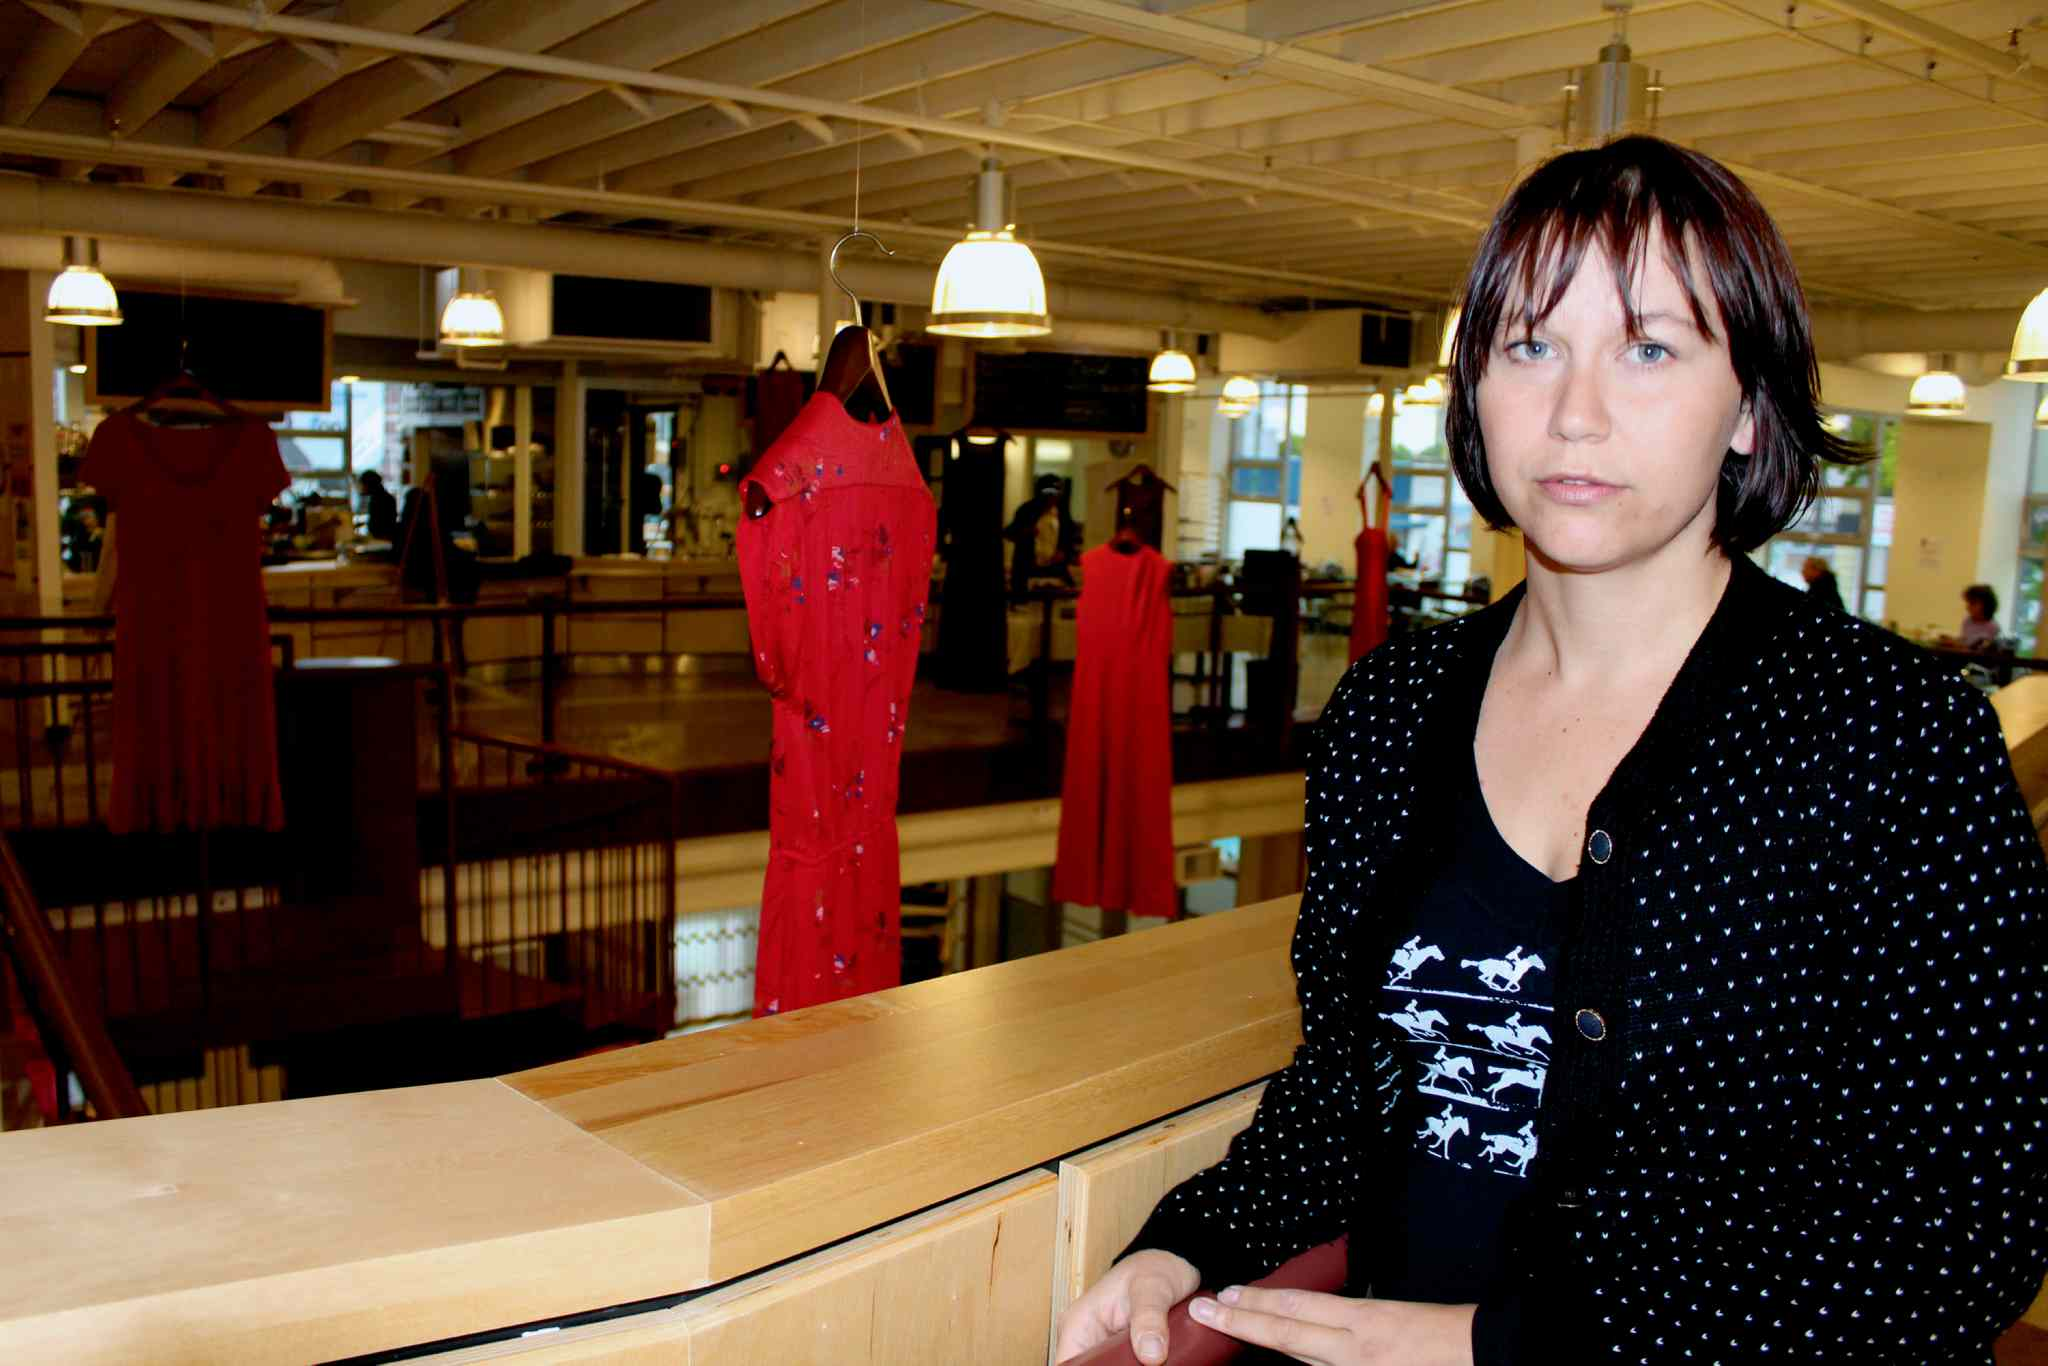 Artist Jaime Black with her visual art installation The REDress Project, created in response to the more than 600 reported cases of missing and murdered Aboriginal women across Canada. The installation is currently on display at Neechi Commons on Main Street.